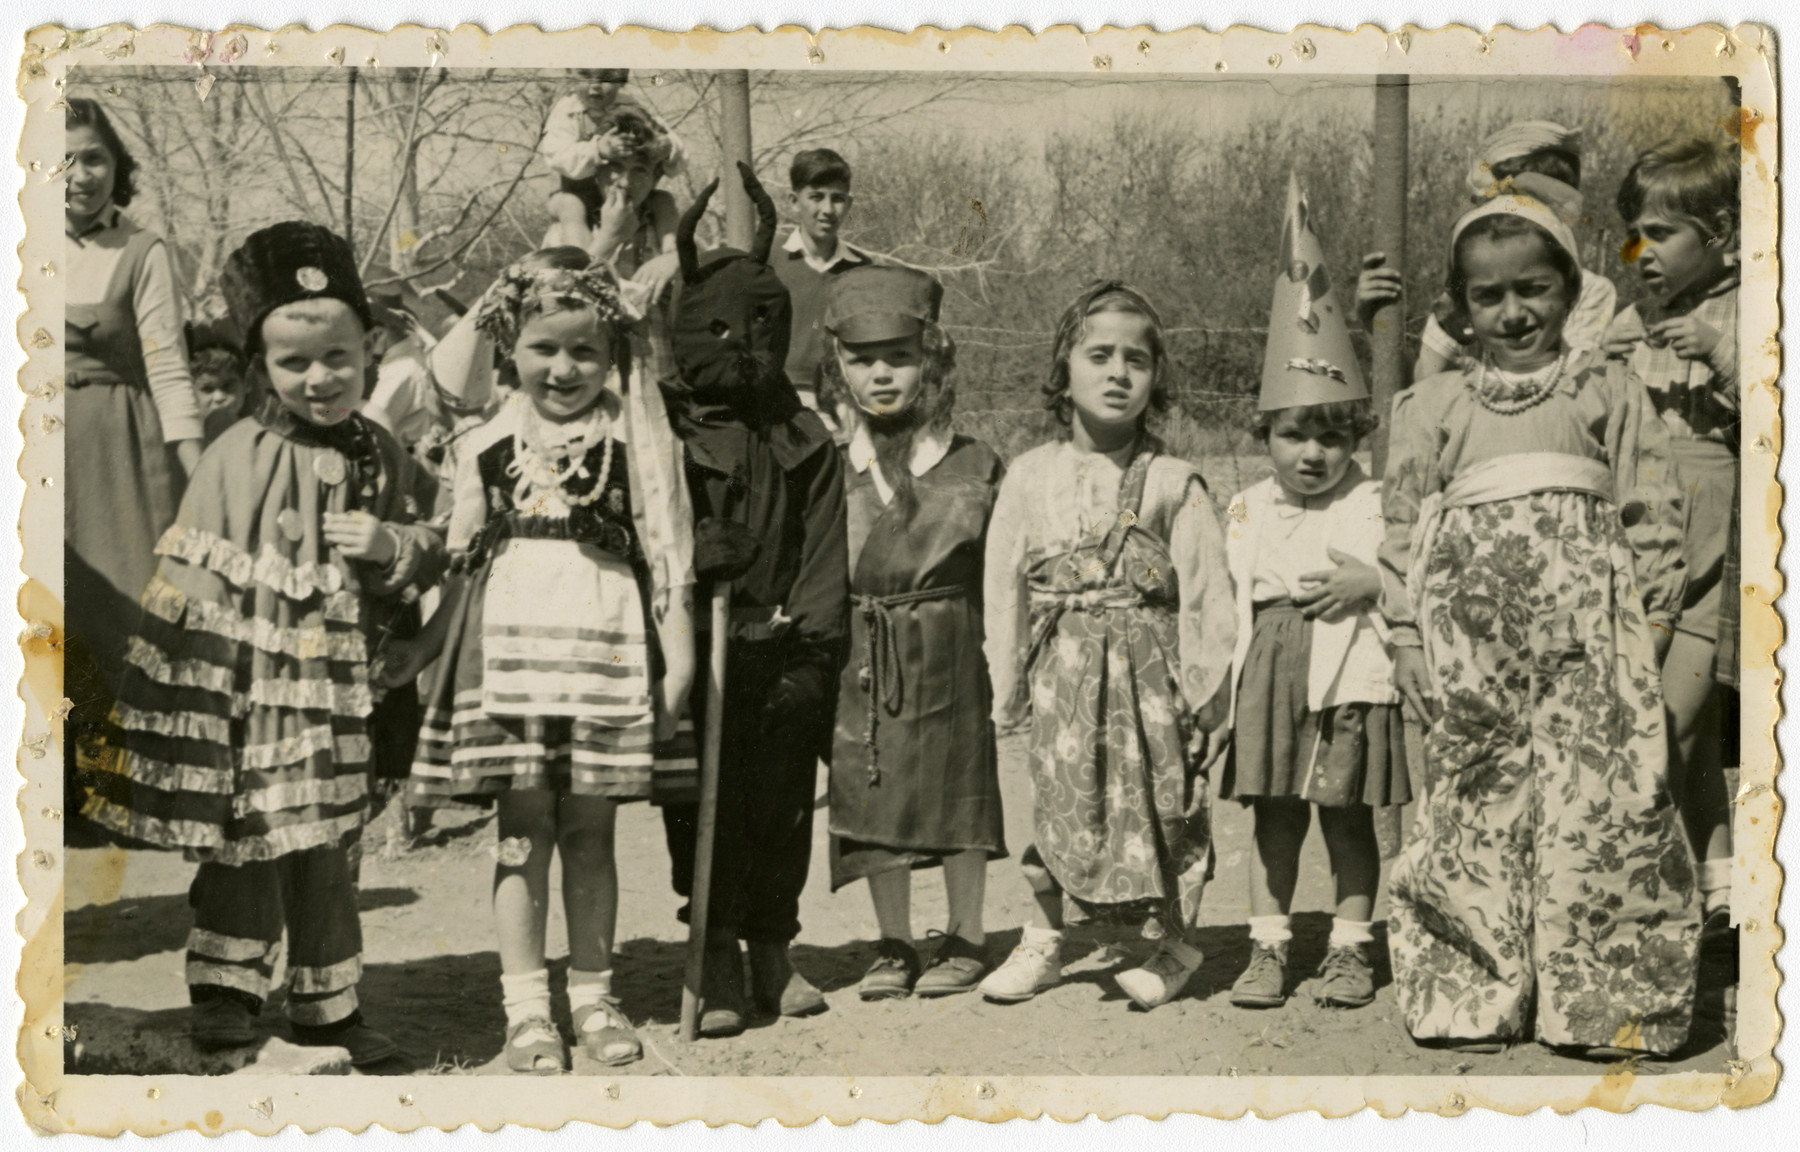 Group portrait of Jewish children wearing costumes [probaly for a Purim celebration].